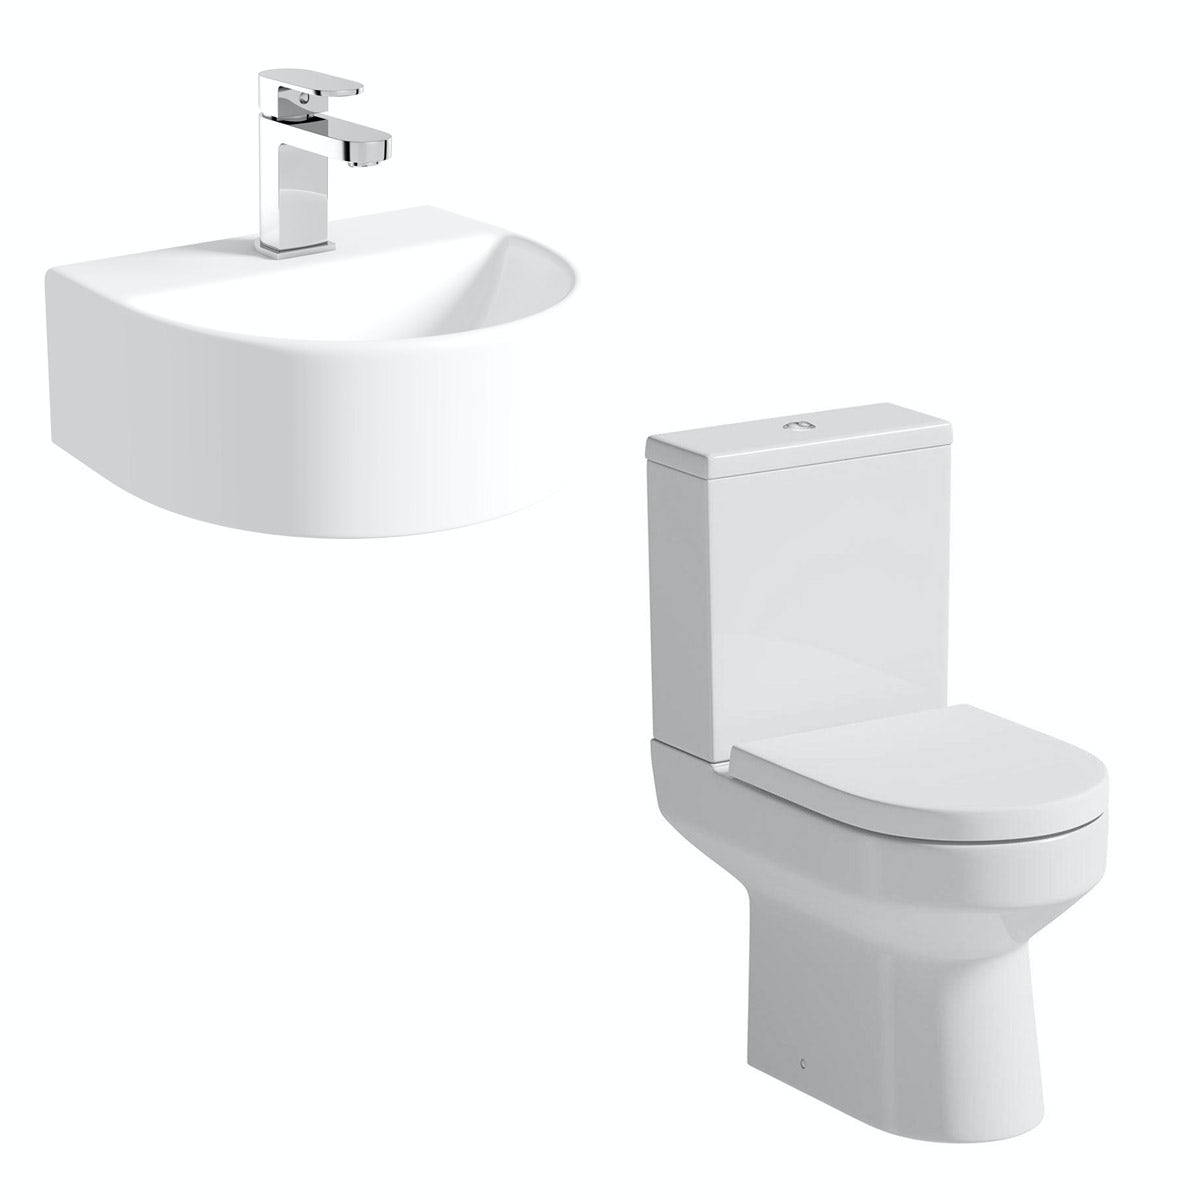 Orchard Wharfe cloakroom suite with contemporary wall hung basin 310mm